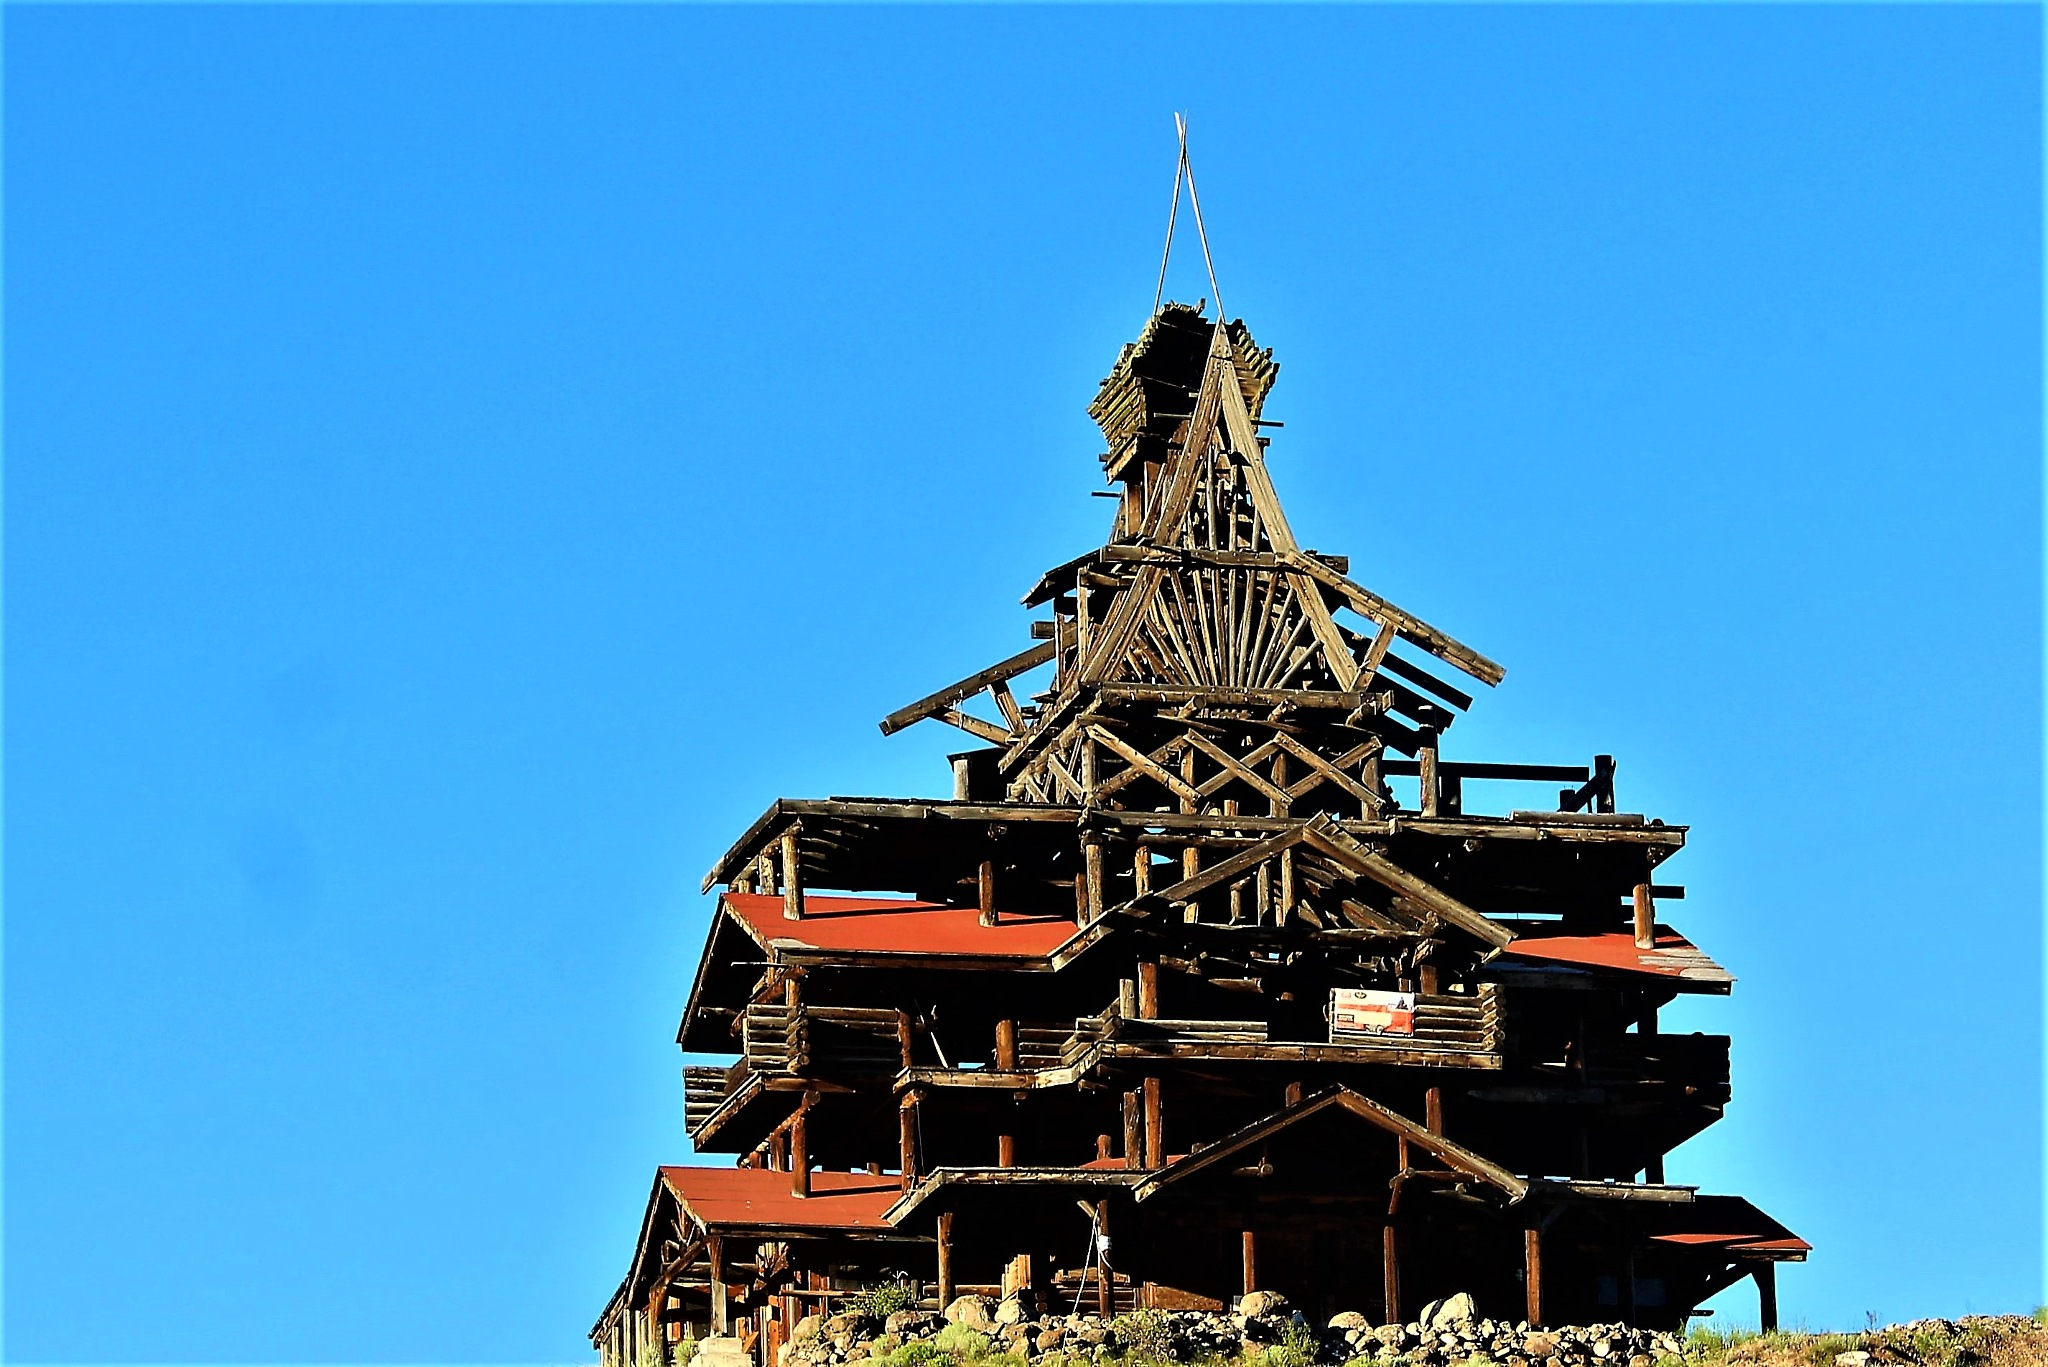 old oil well or old house? or both? by Jim Thoma